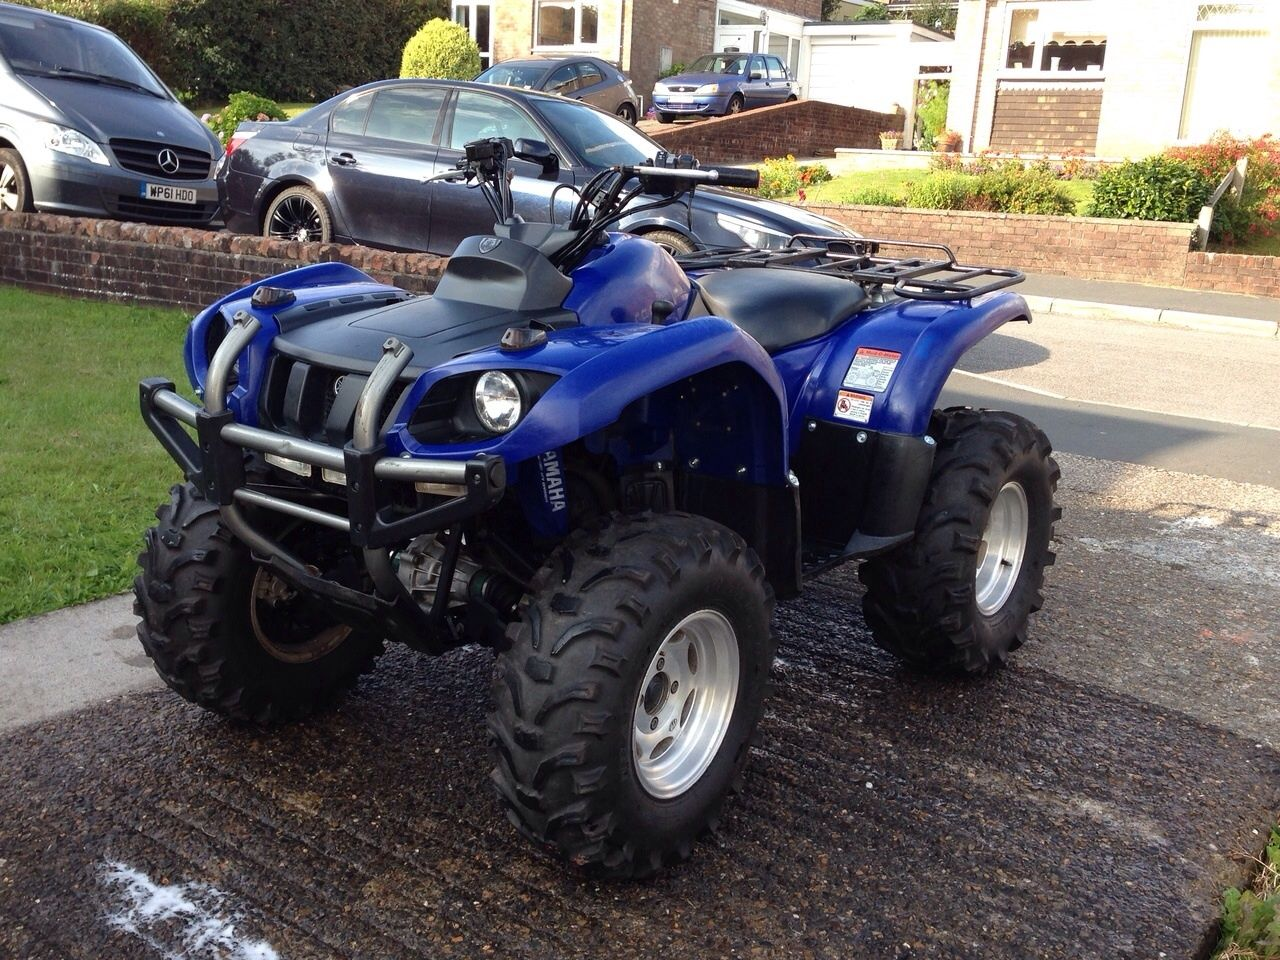 Yamaha grizzly 660 727cc road legal atv 2006 4x4 not for Yamaha grizzly atv